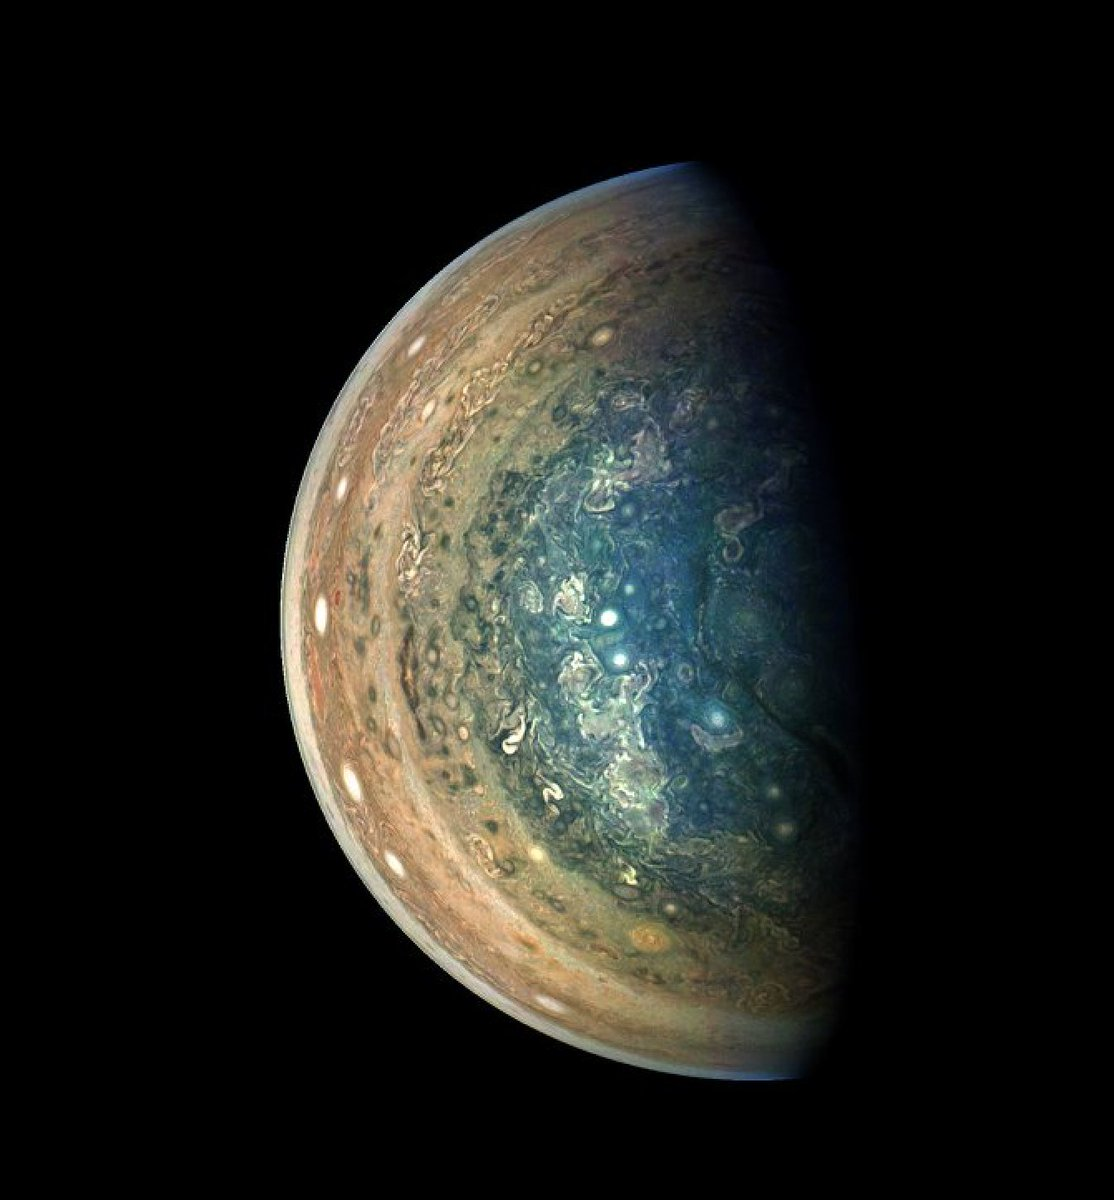 Jupiter, you gorgeous space gobstopper. We can't stop staring at the swirling south pole of the planet. 📸: @NASAJuno https://t.co/2DndOBQkgy